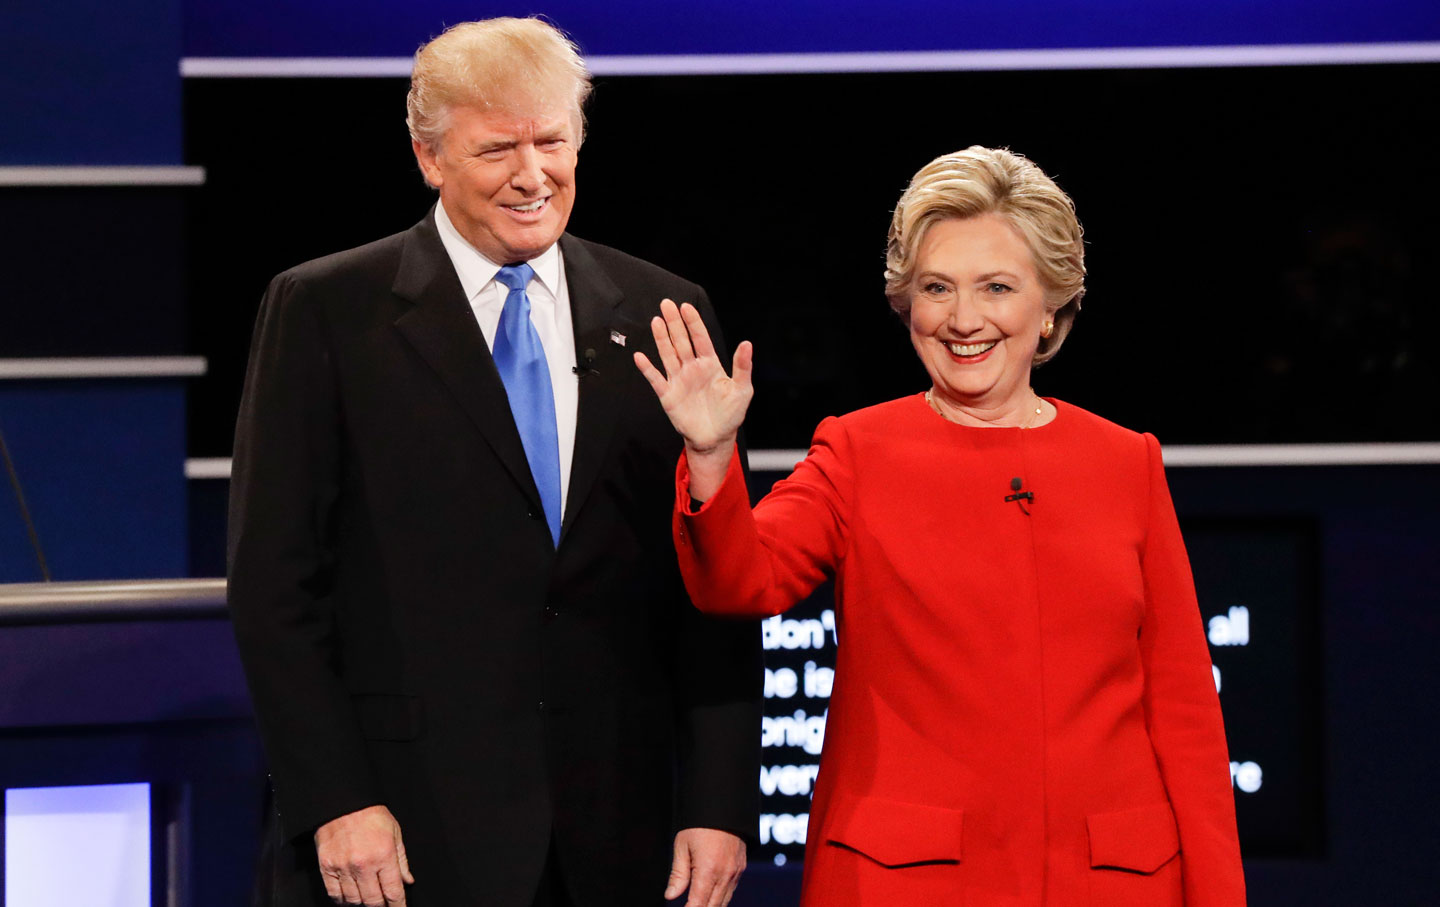 On Nuclear Policy Trump And Clinton Agree Armageddon Is